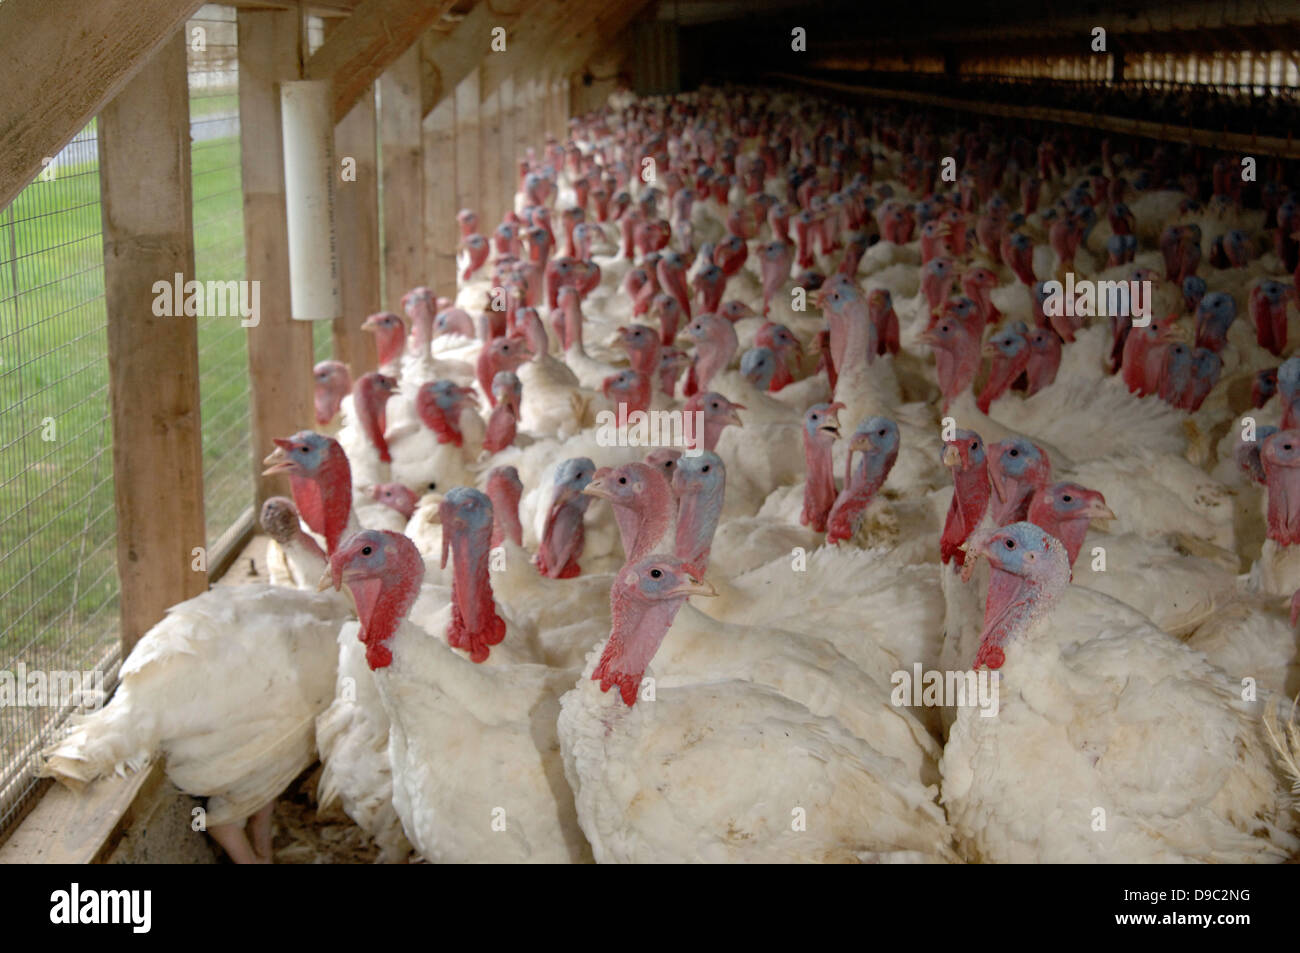 Farm-bred domesticated turkeys gather in a poultry house September 9, 2008 in Rockingham County, Virginia. - Stock Image